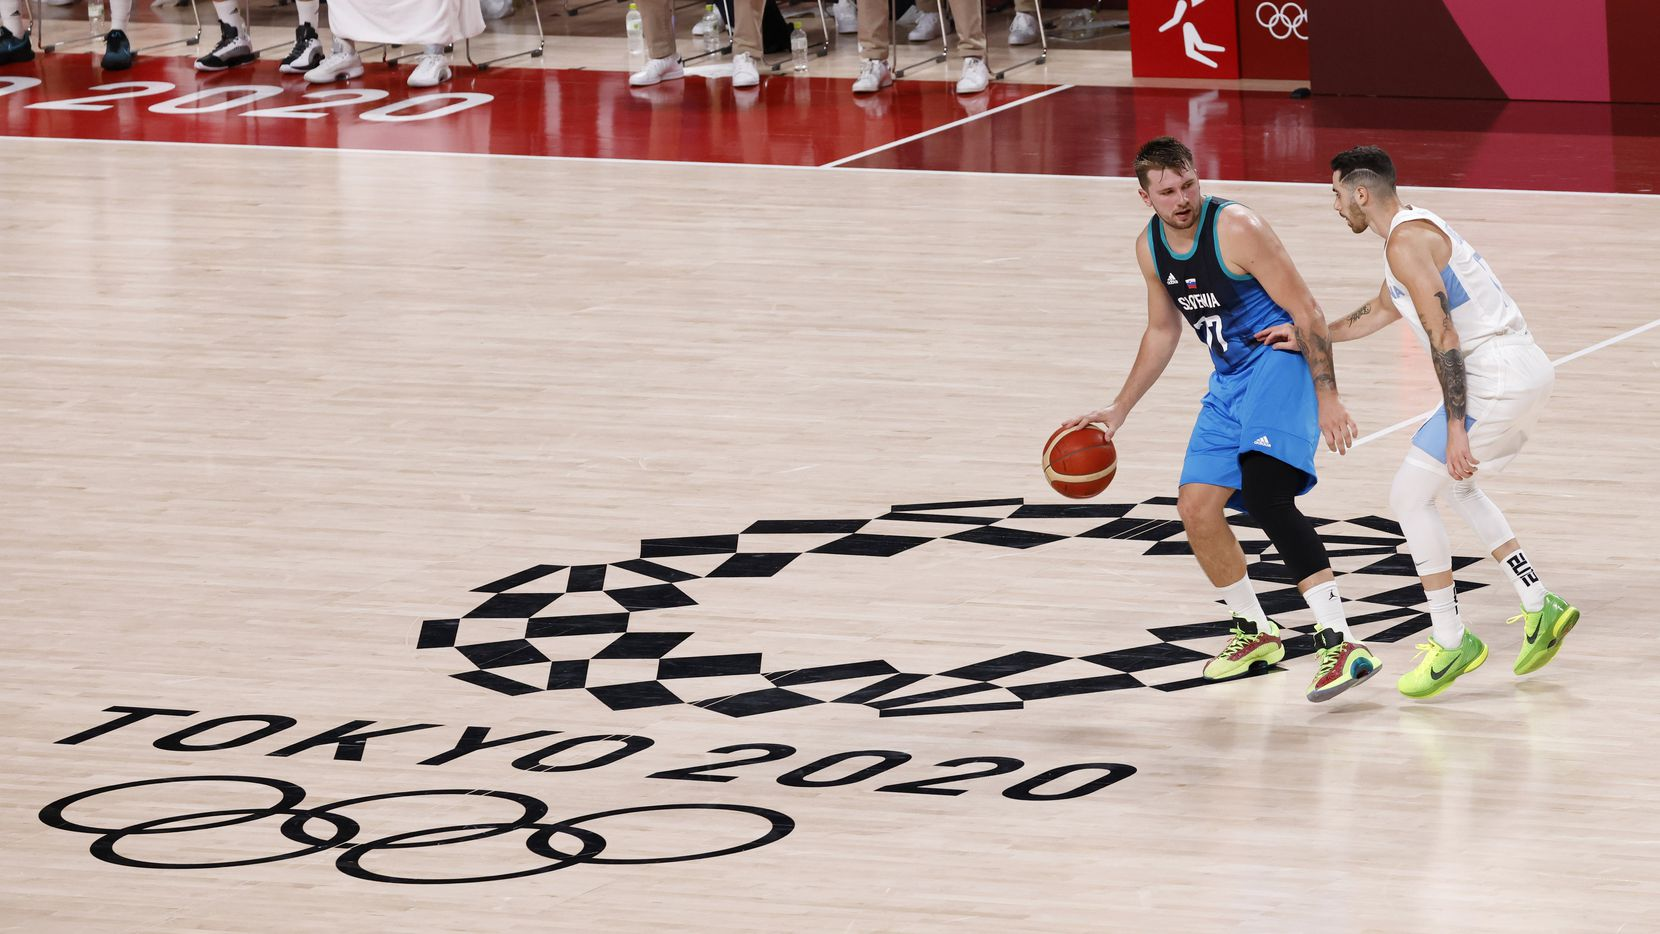 Slovenia's Luka Doncic (77) brings the ball up the court as Argentina's Luca Vildoza (17) defends in the second half of play during the postponed 2020 Tokyo Olympics at Saitama Super Arena on Monday, July 26, 2021, in Saitama, Japan.